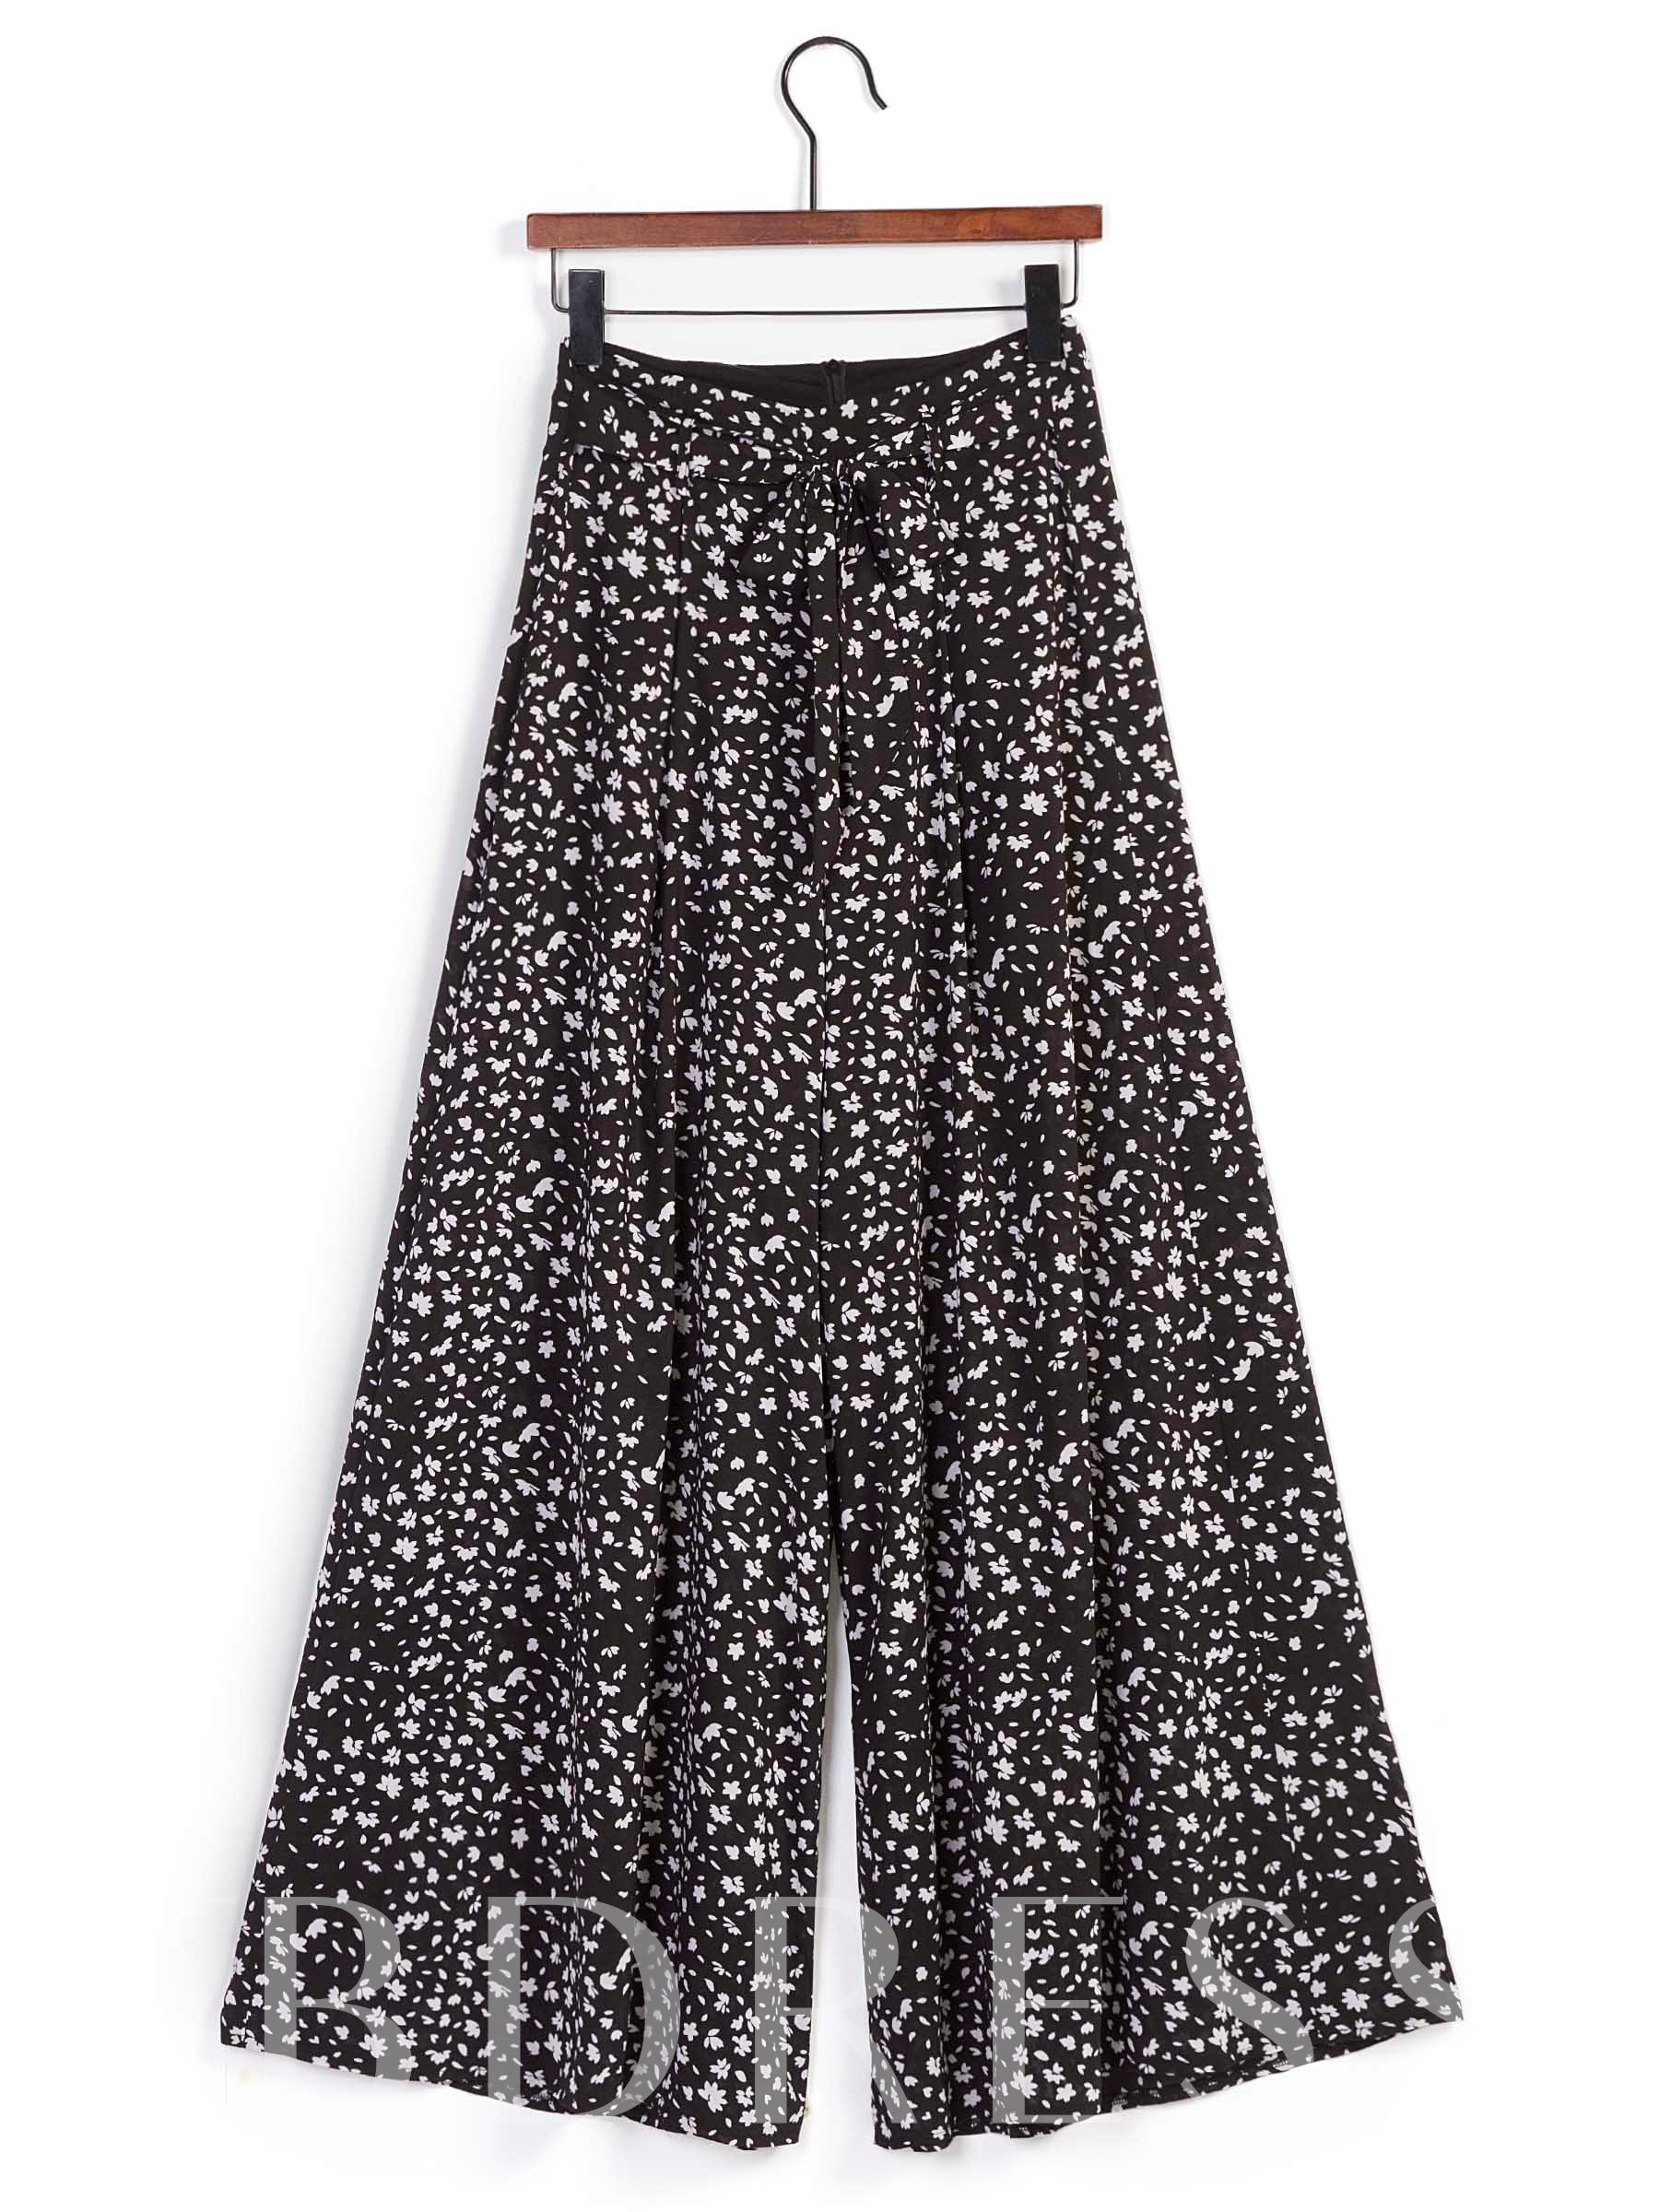 Buy Floral Print Loose Wide Legs Women's Casual Pants, Summer, 13263716 for $14.71 in TBDress store